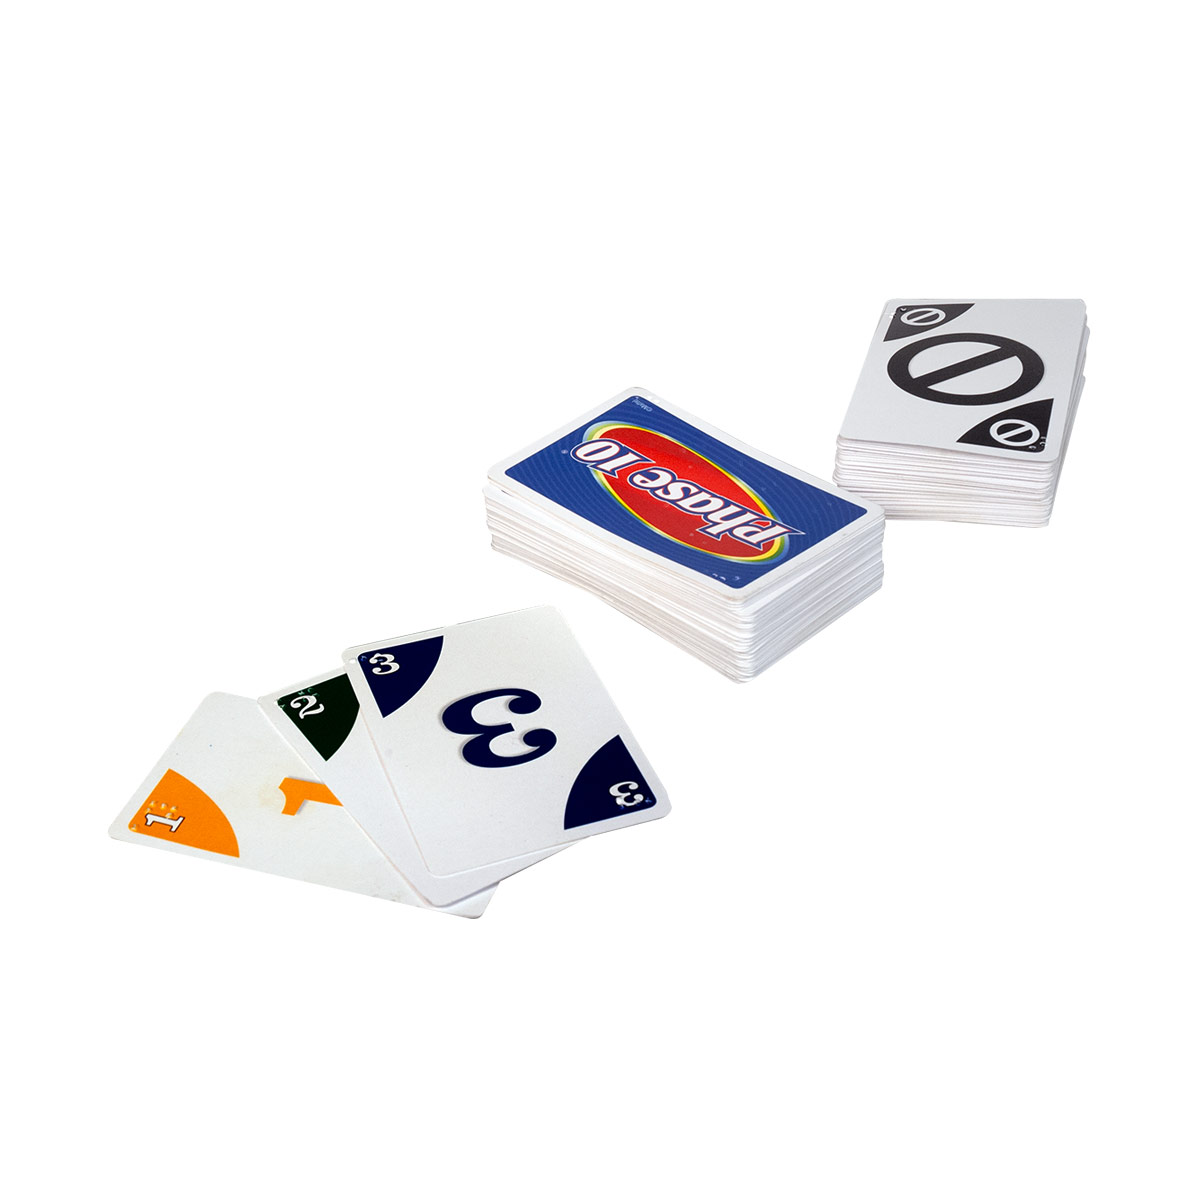 Reizen Braille Phase 10 Card Game for the Blind and Low Vision Price: $17.95